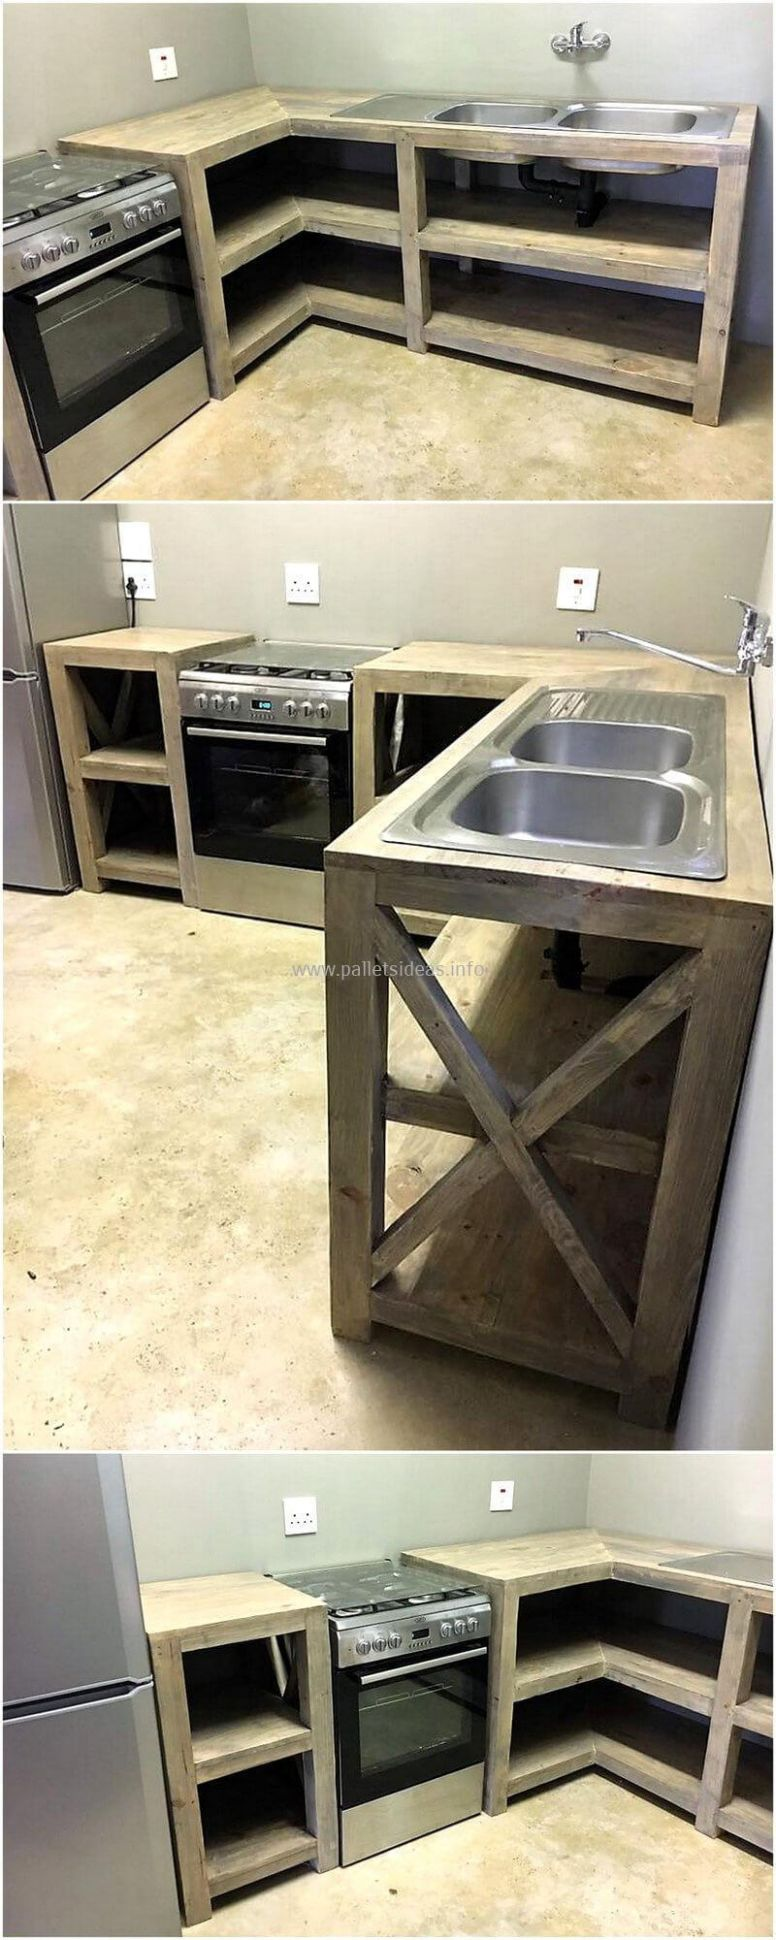 12 Ideas for Wood Pallet Made Kitchens   DIY Motive - kitchen ideas using pallets